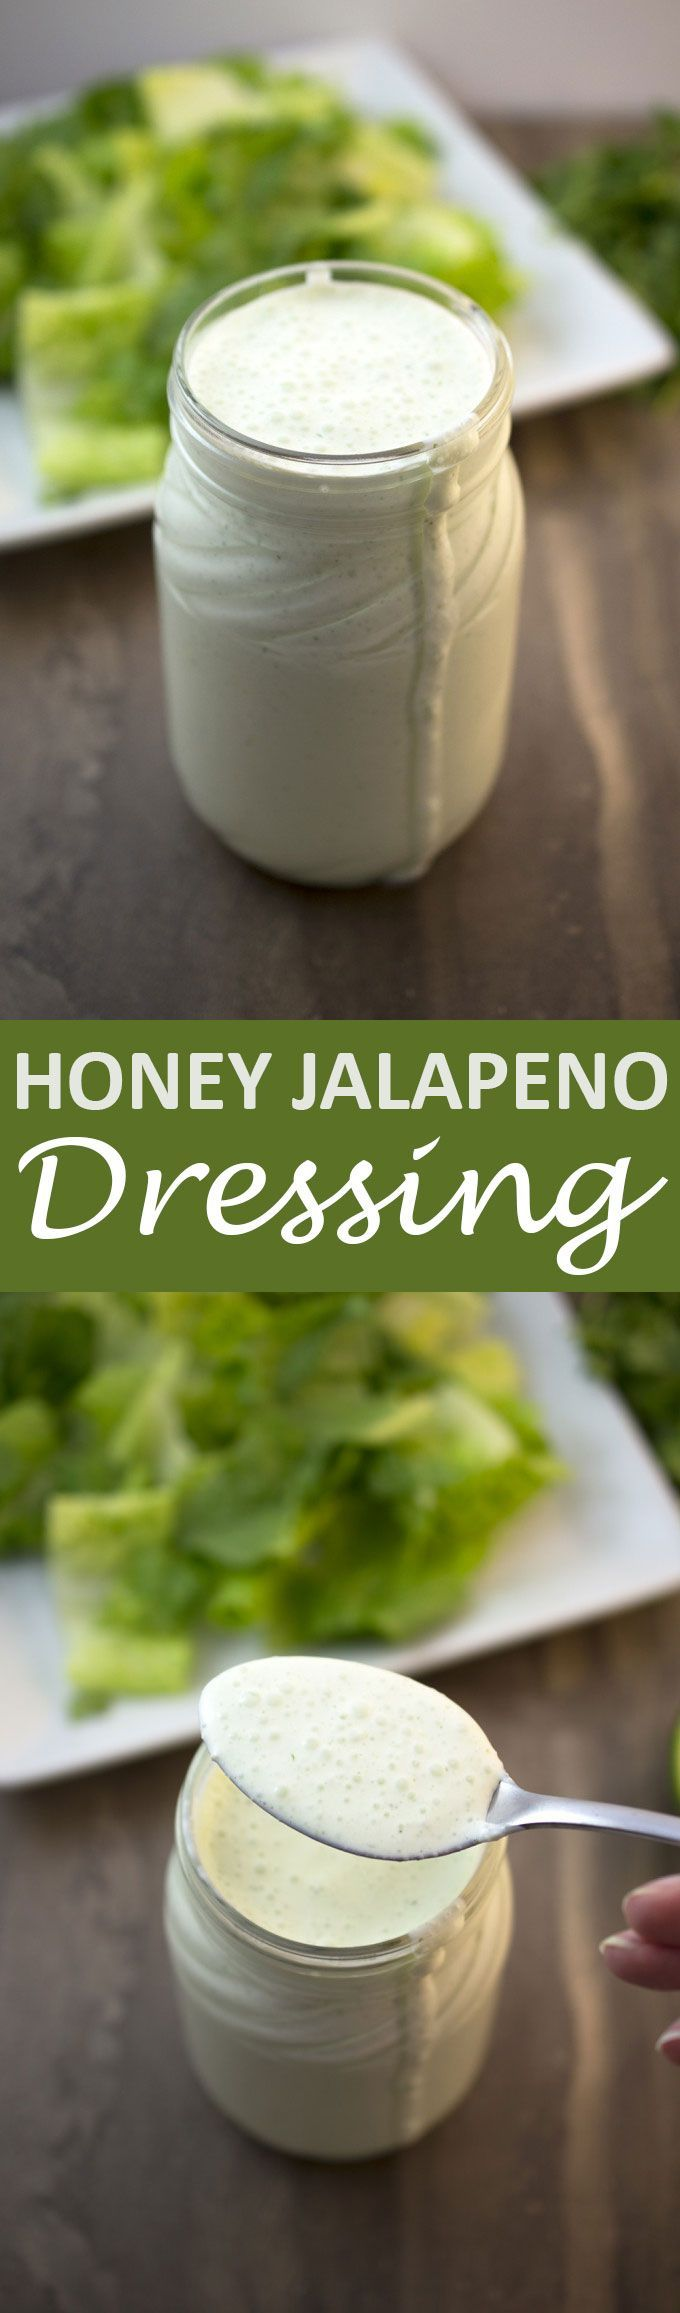 This Honey Jalapeno Dressing is sweet, creamy, and spicy! Not to mention it can be made in less than 5 minutes!